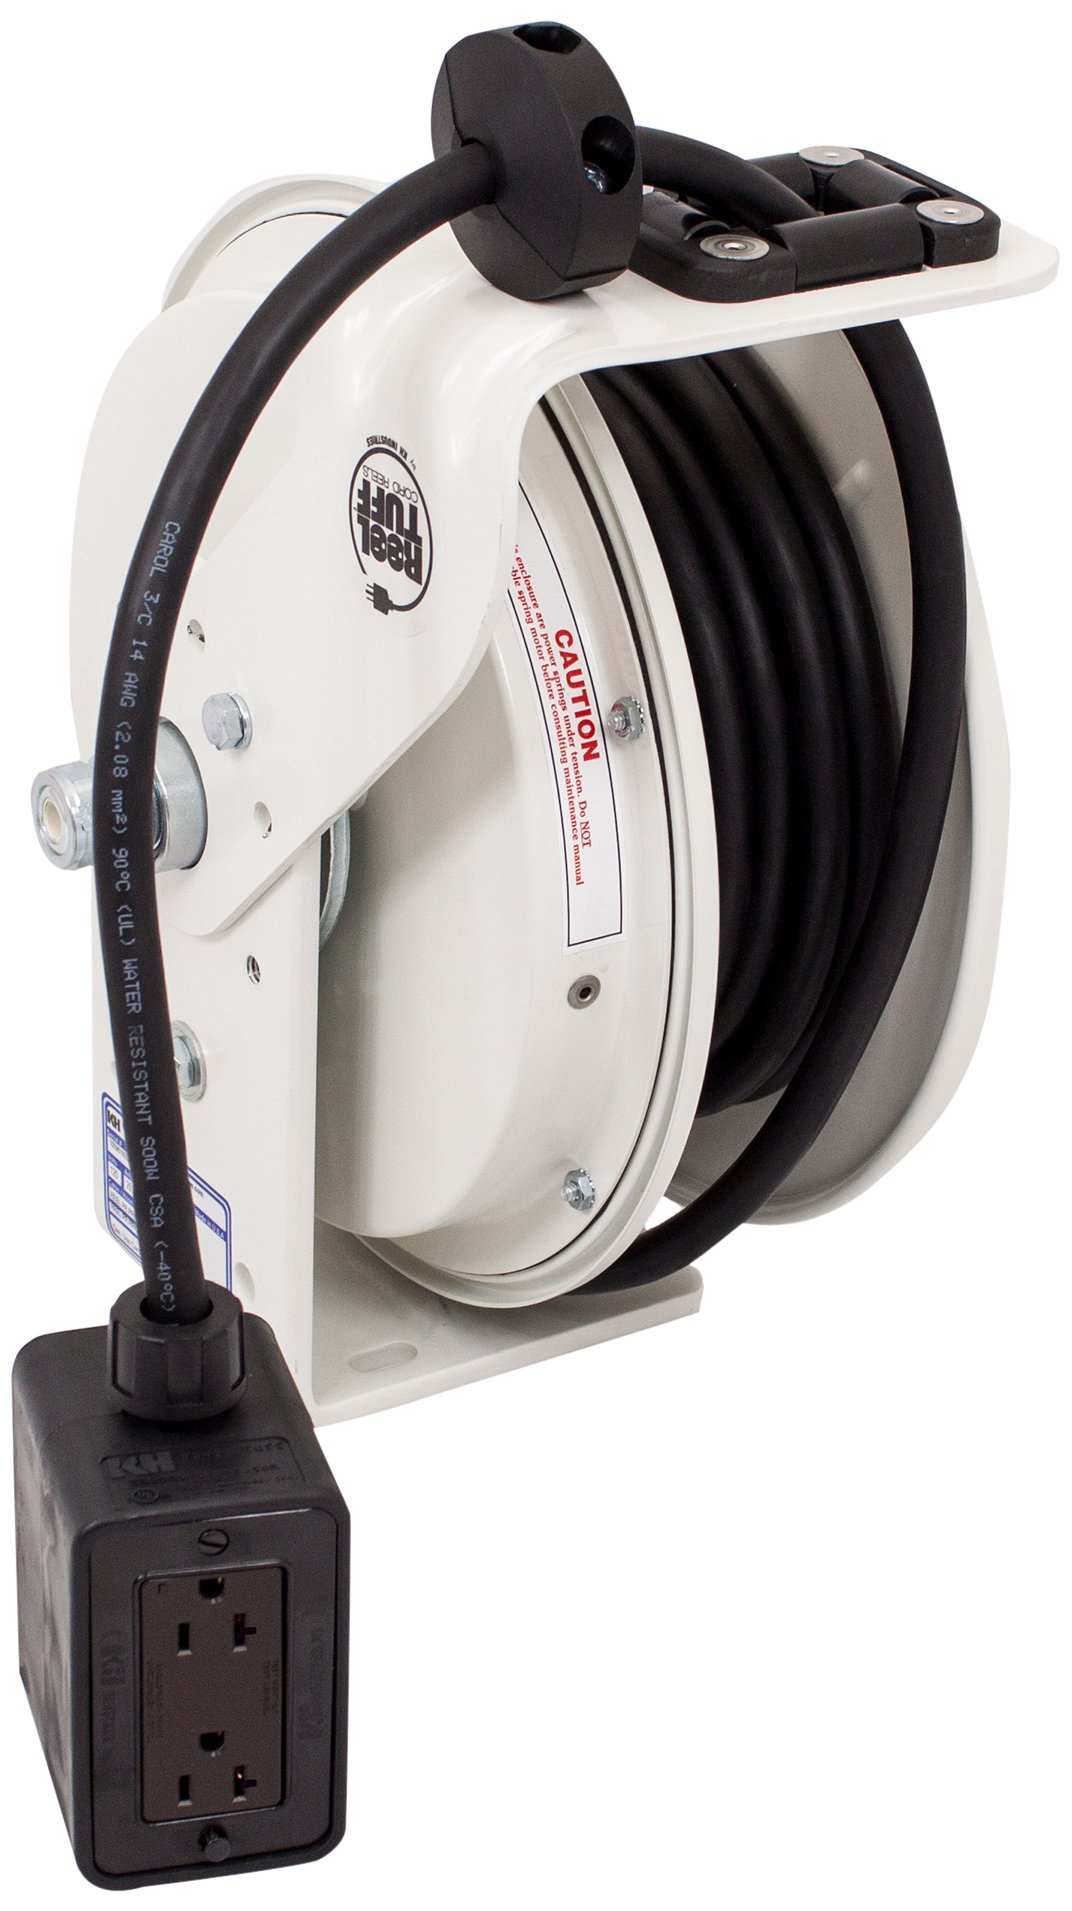 KH Industries RTB Series ReelTuff Power Cord Reel, 12/3 SJOW Black Cable and Four Receptacle Outlet Box, 20 Amp, 25' Length, White Powder Coat Finish